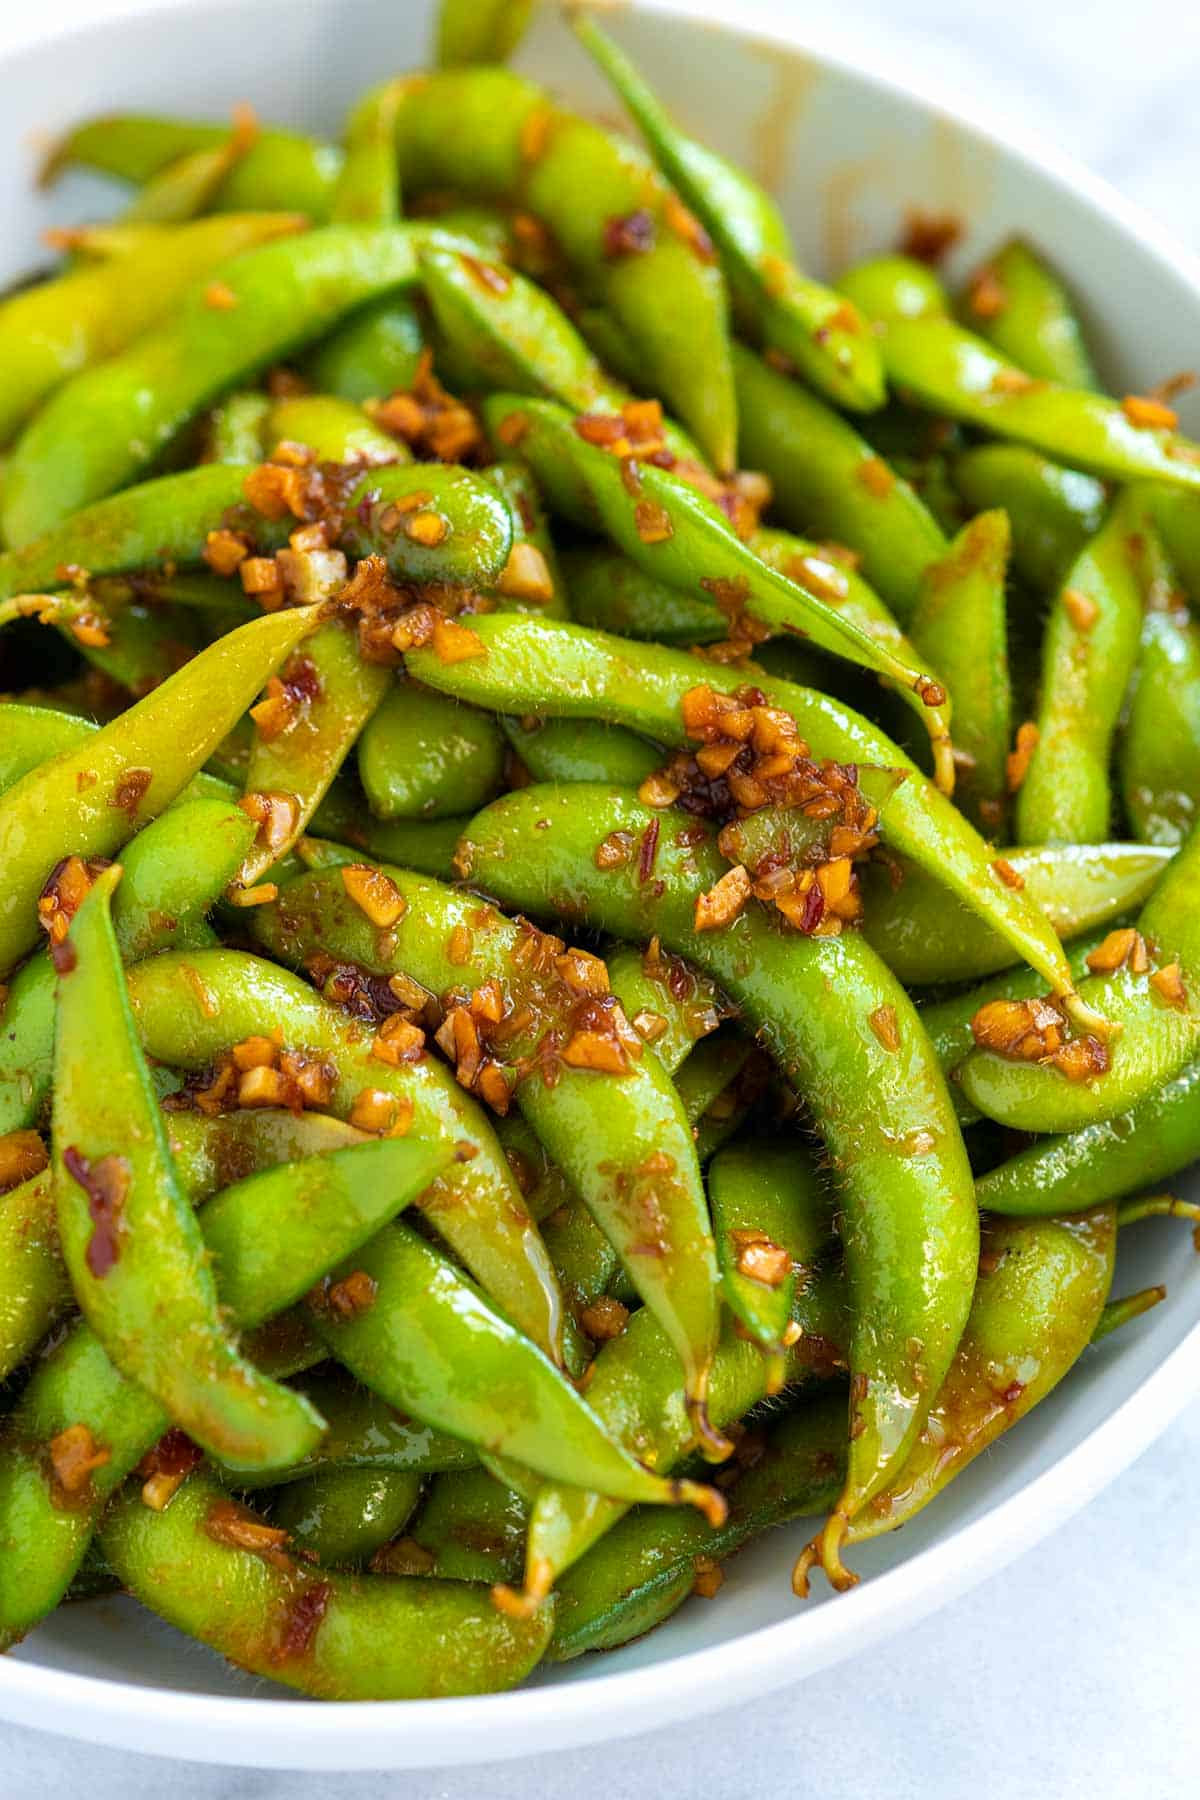 Edamame pods with chili garlic sauce